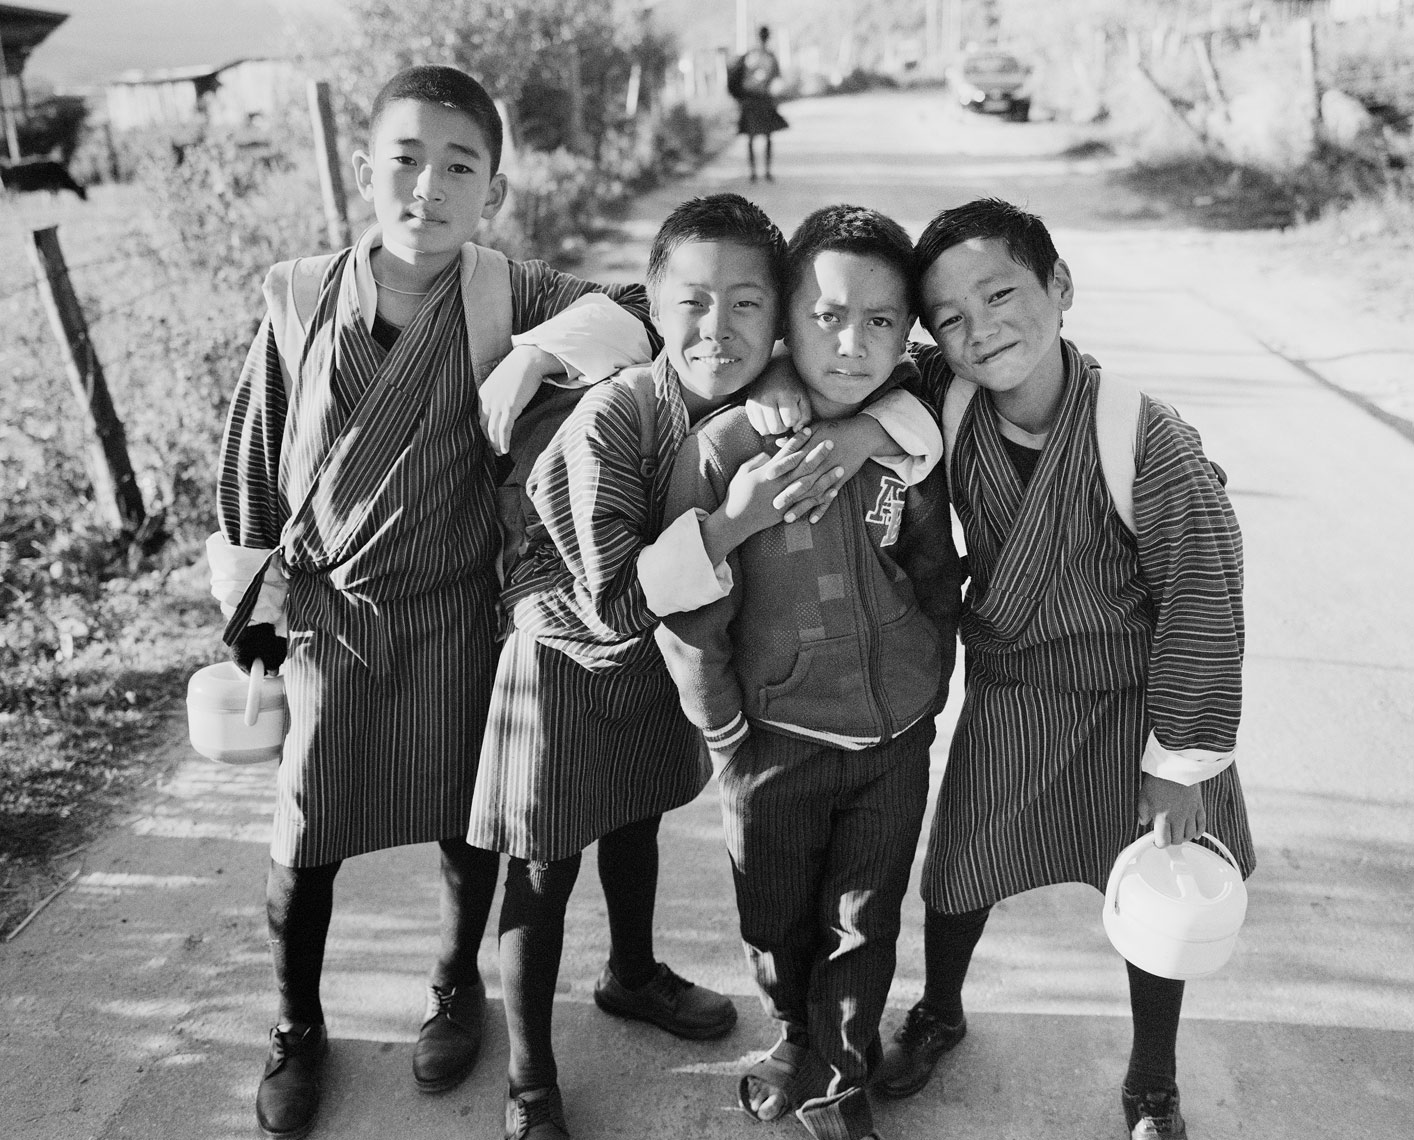 bumthang-boys-on-road-v2-print